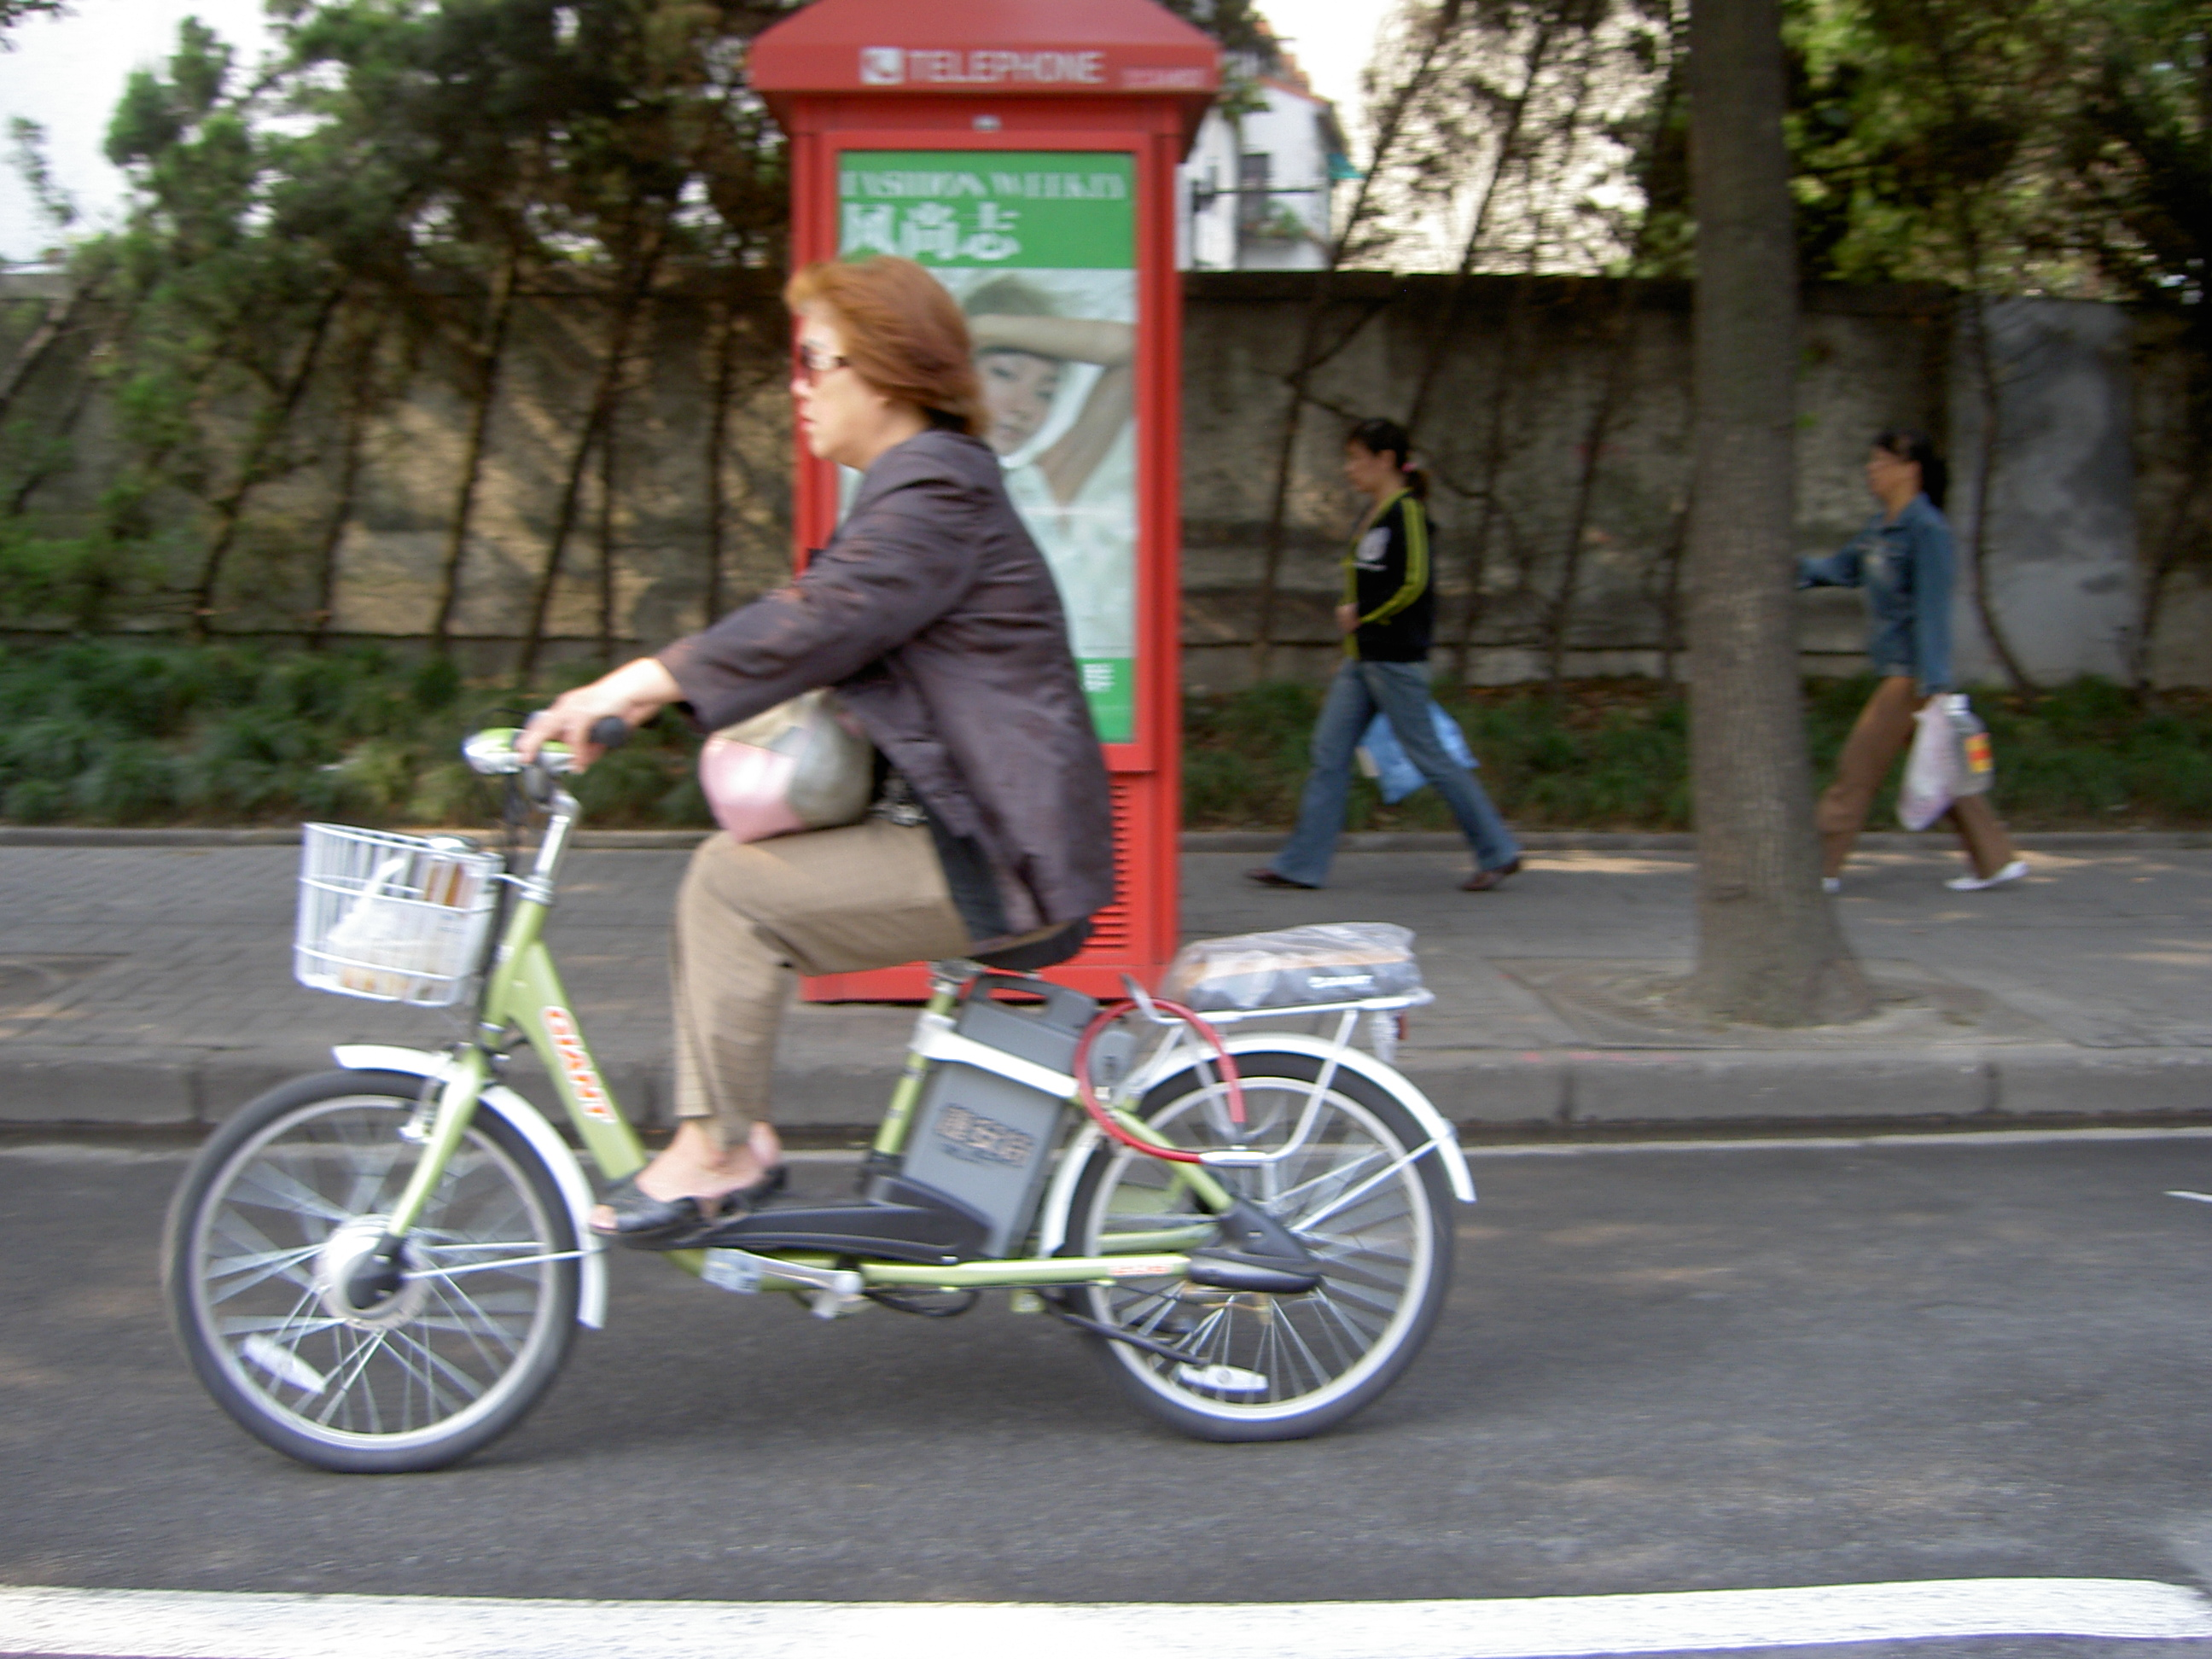 Electric_bicycle_1594050766_4a814bf237_z